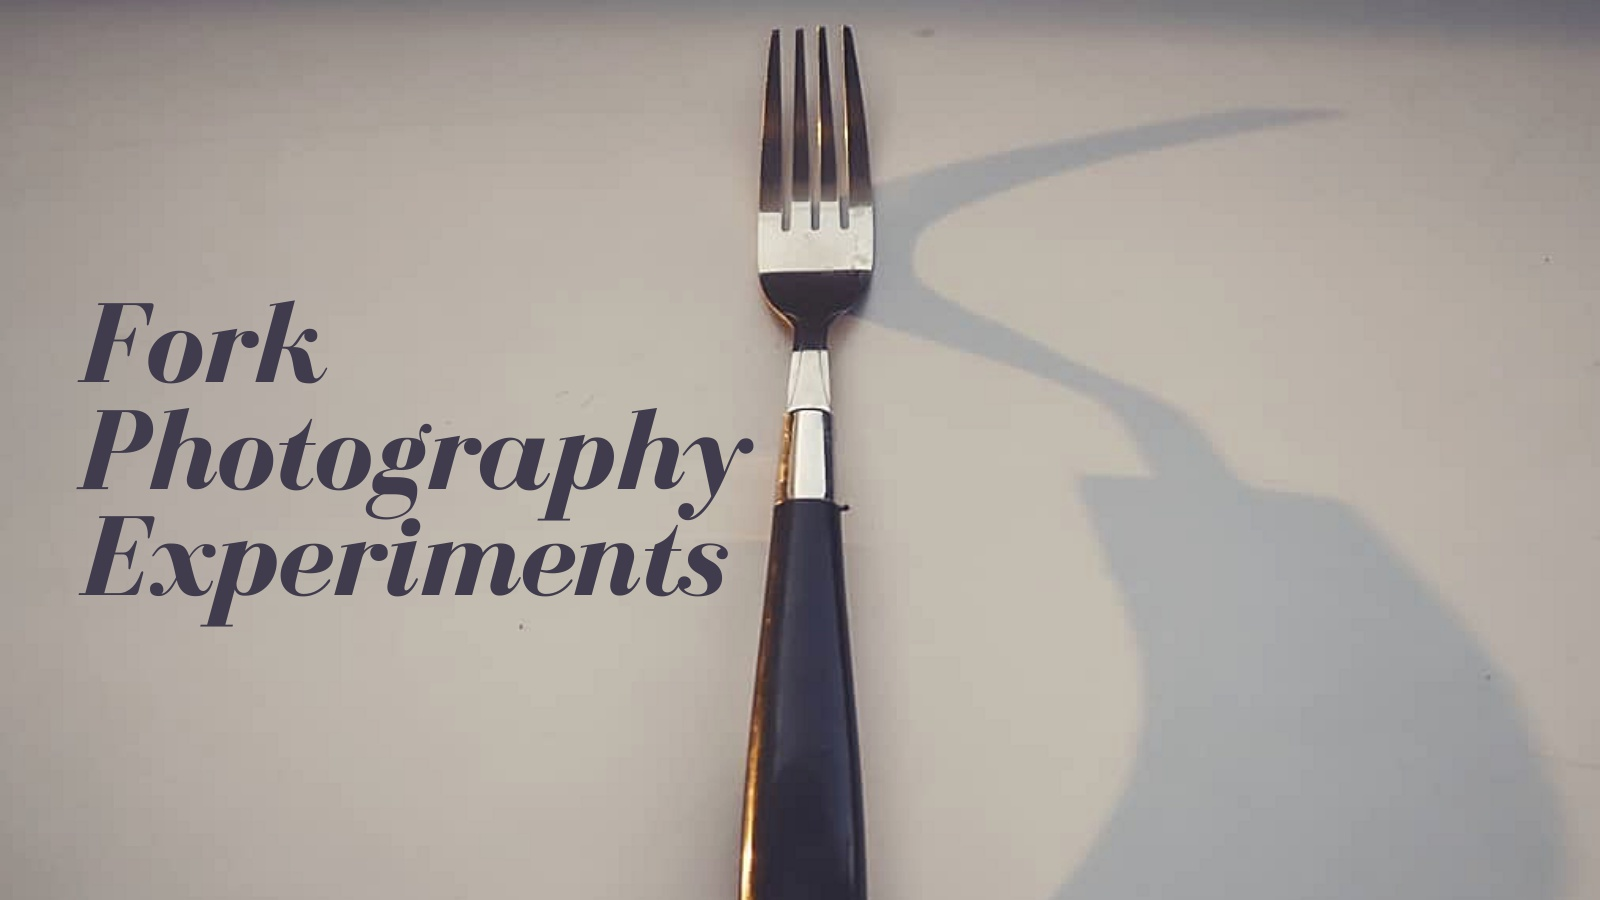 Fork Photography Experiments